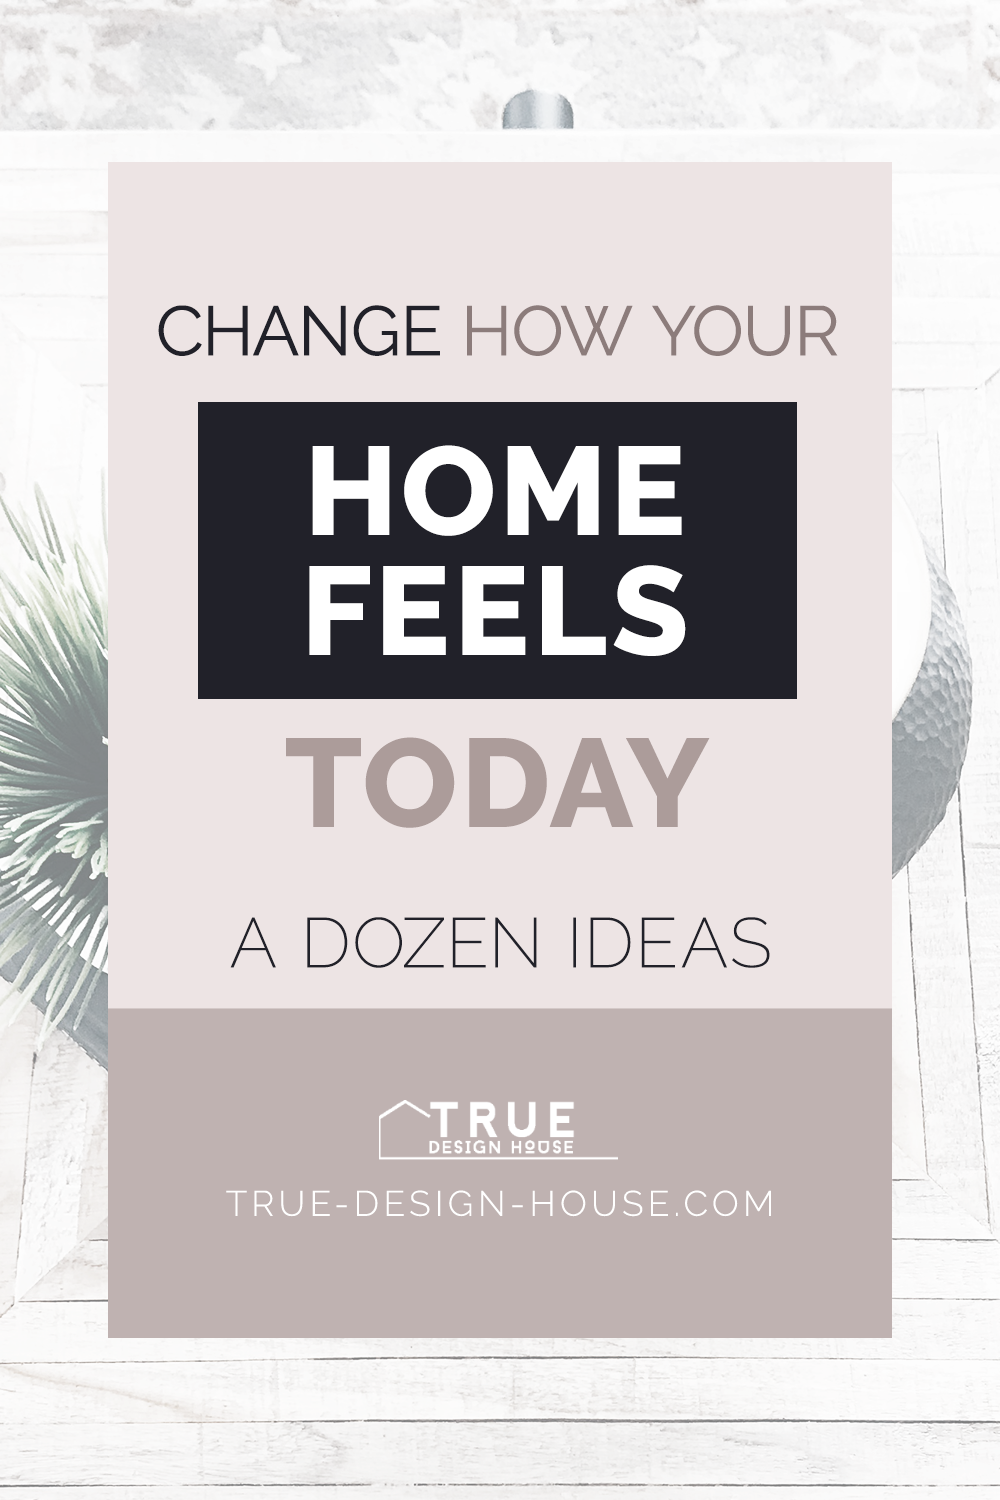 true design house - change how your home feels - 43 - pinterest - 4.png